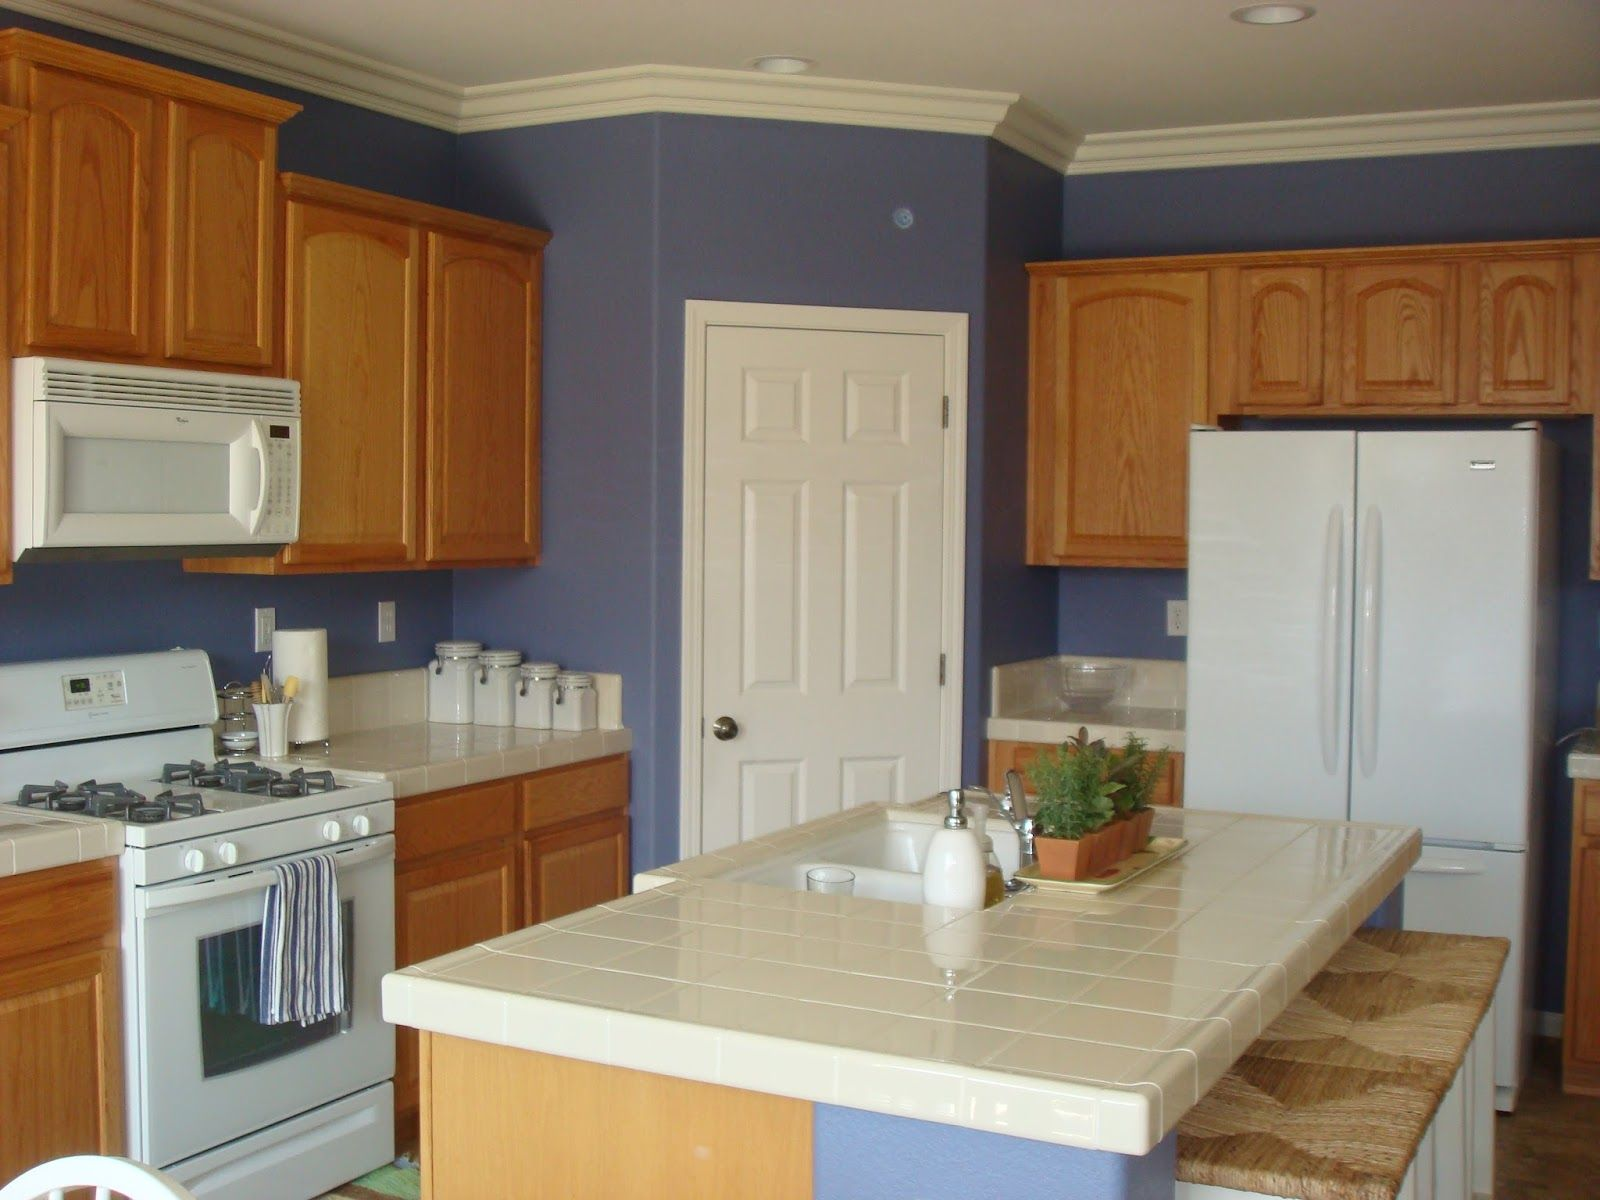 Colors For Kitchen Walls With White Cabinets Pleasurable Blue Colors For Kitchen Walls With Wooden